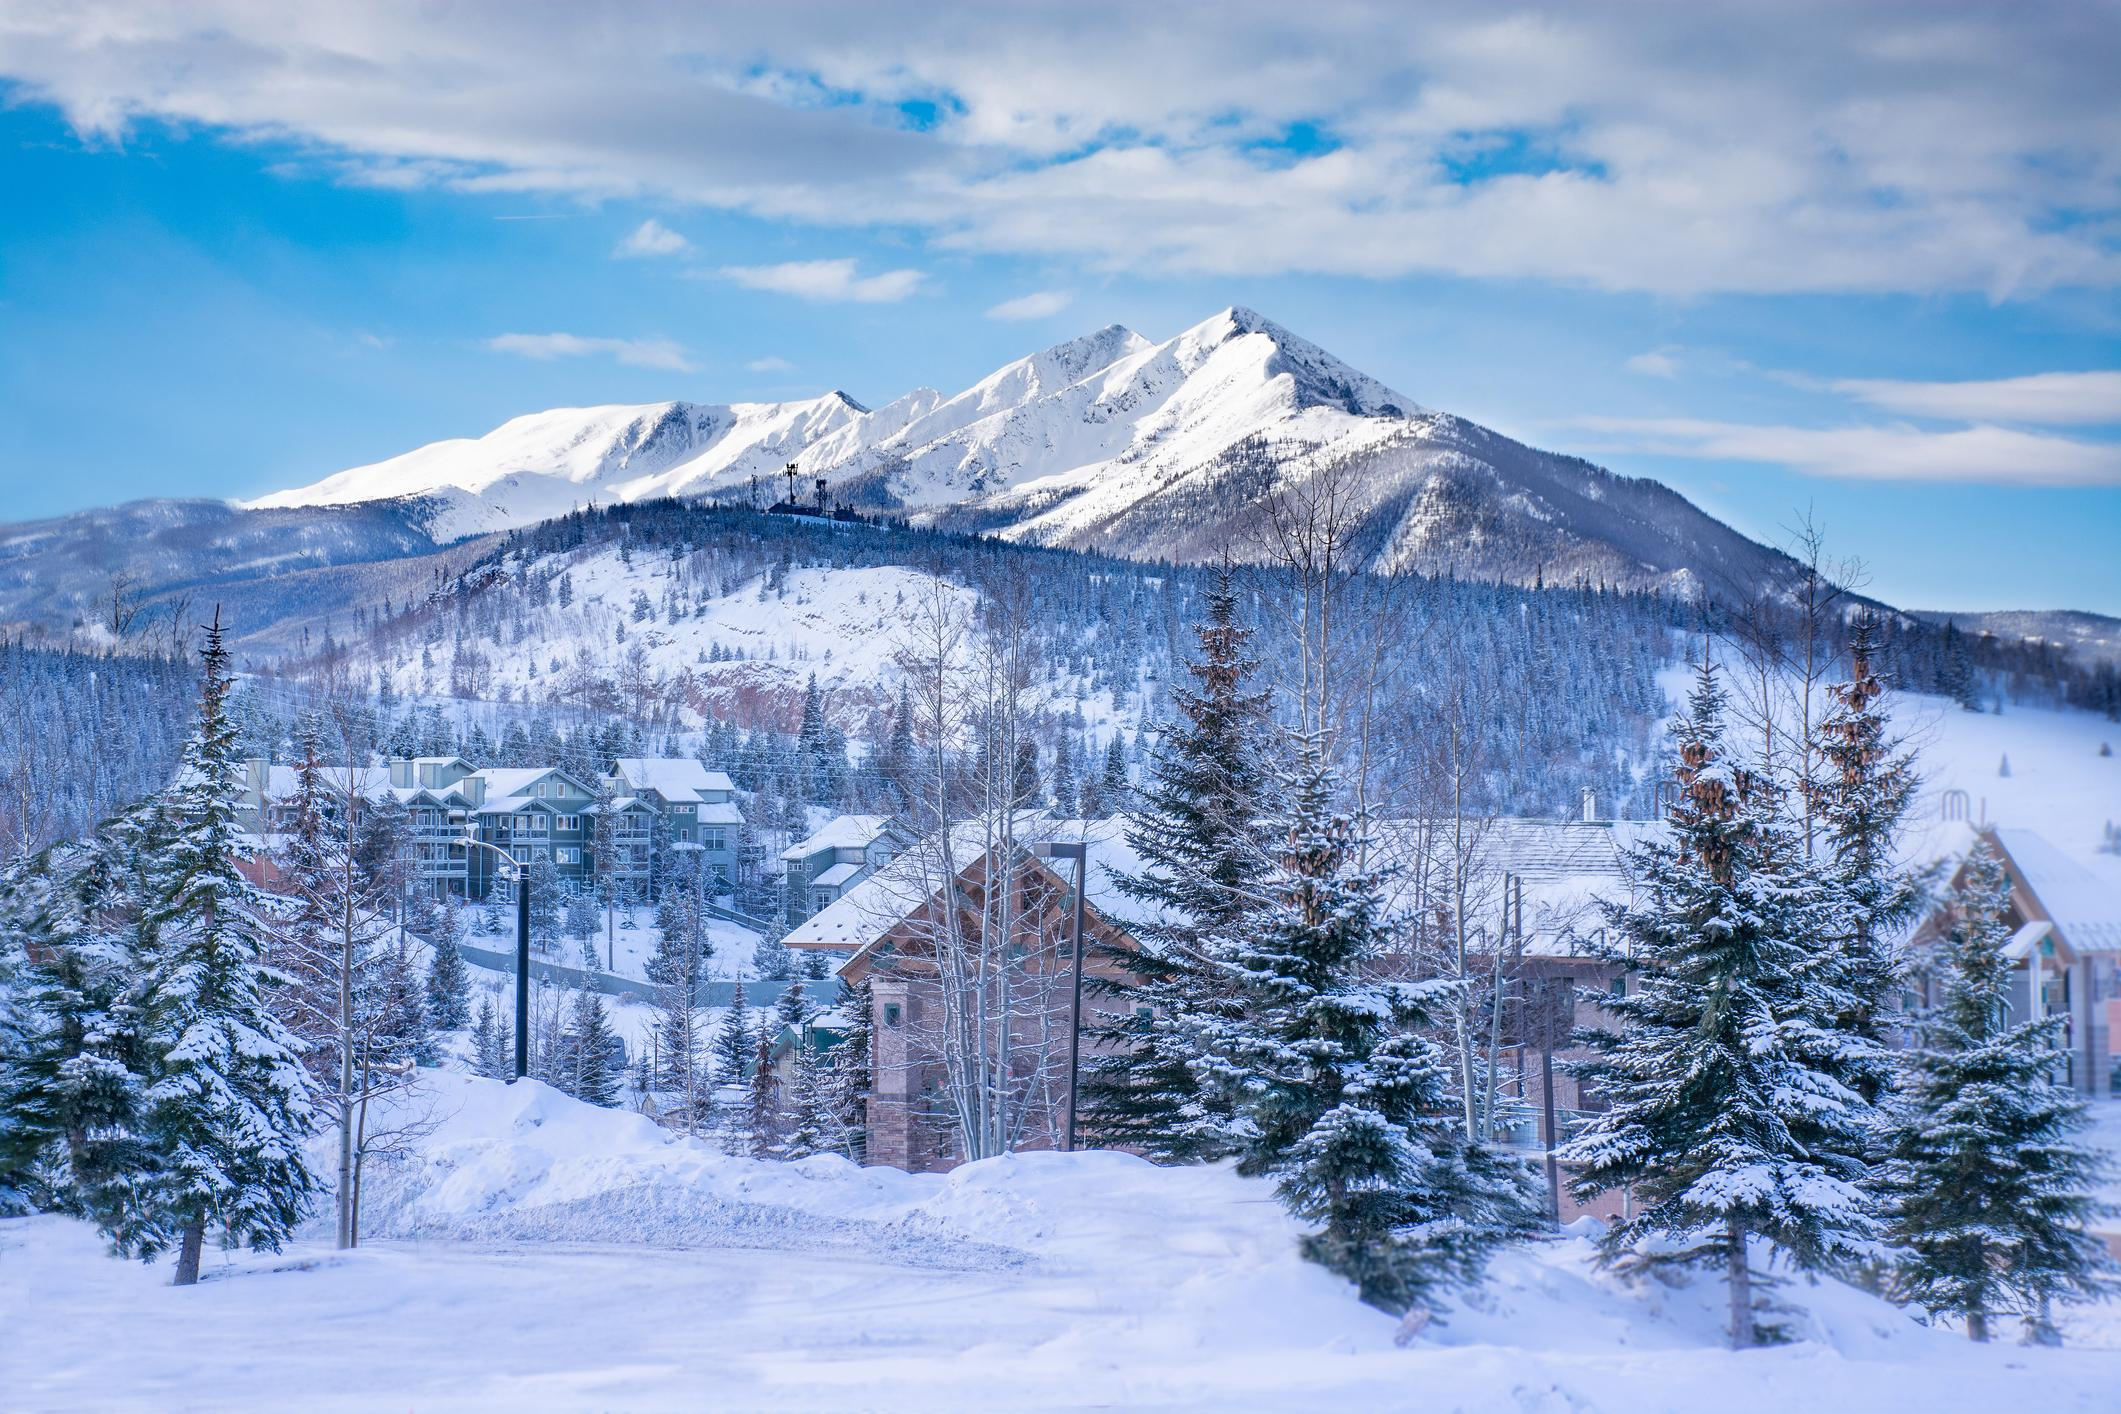 Travel just minutes to the slopes at multiple prominent ski resorts.